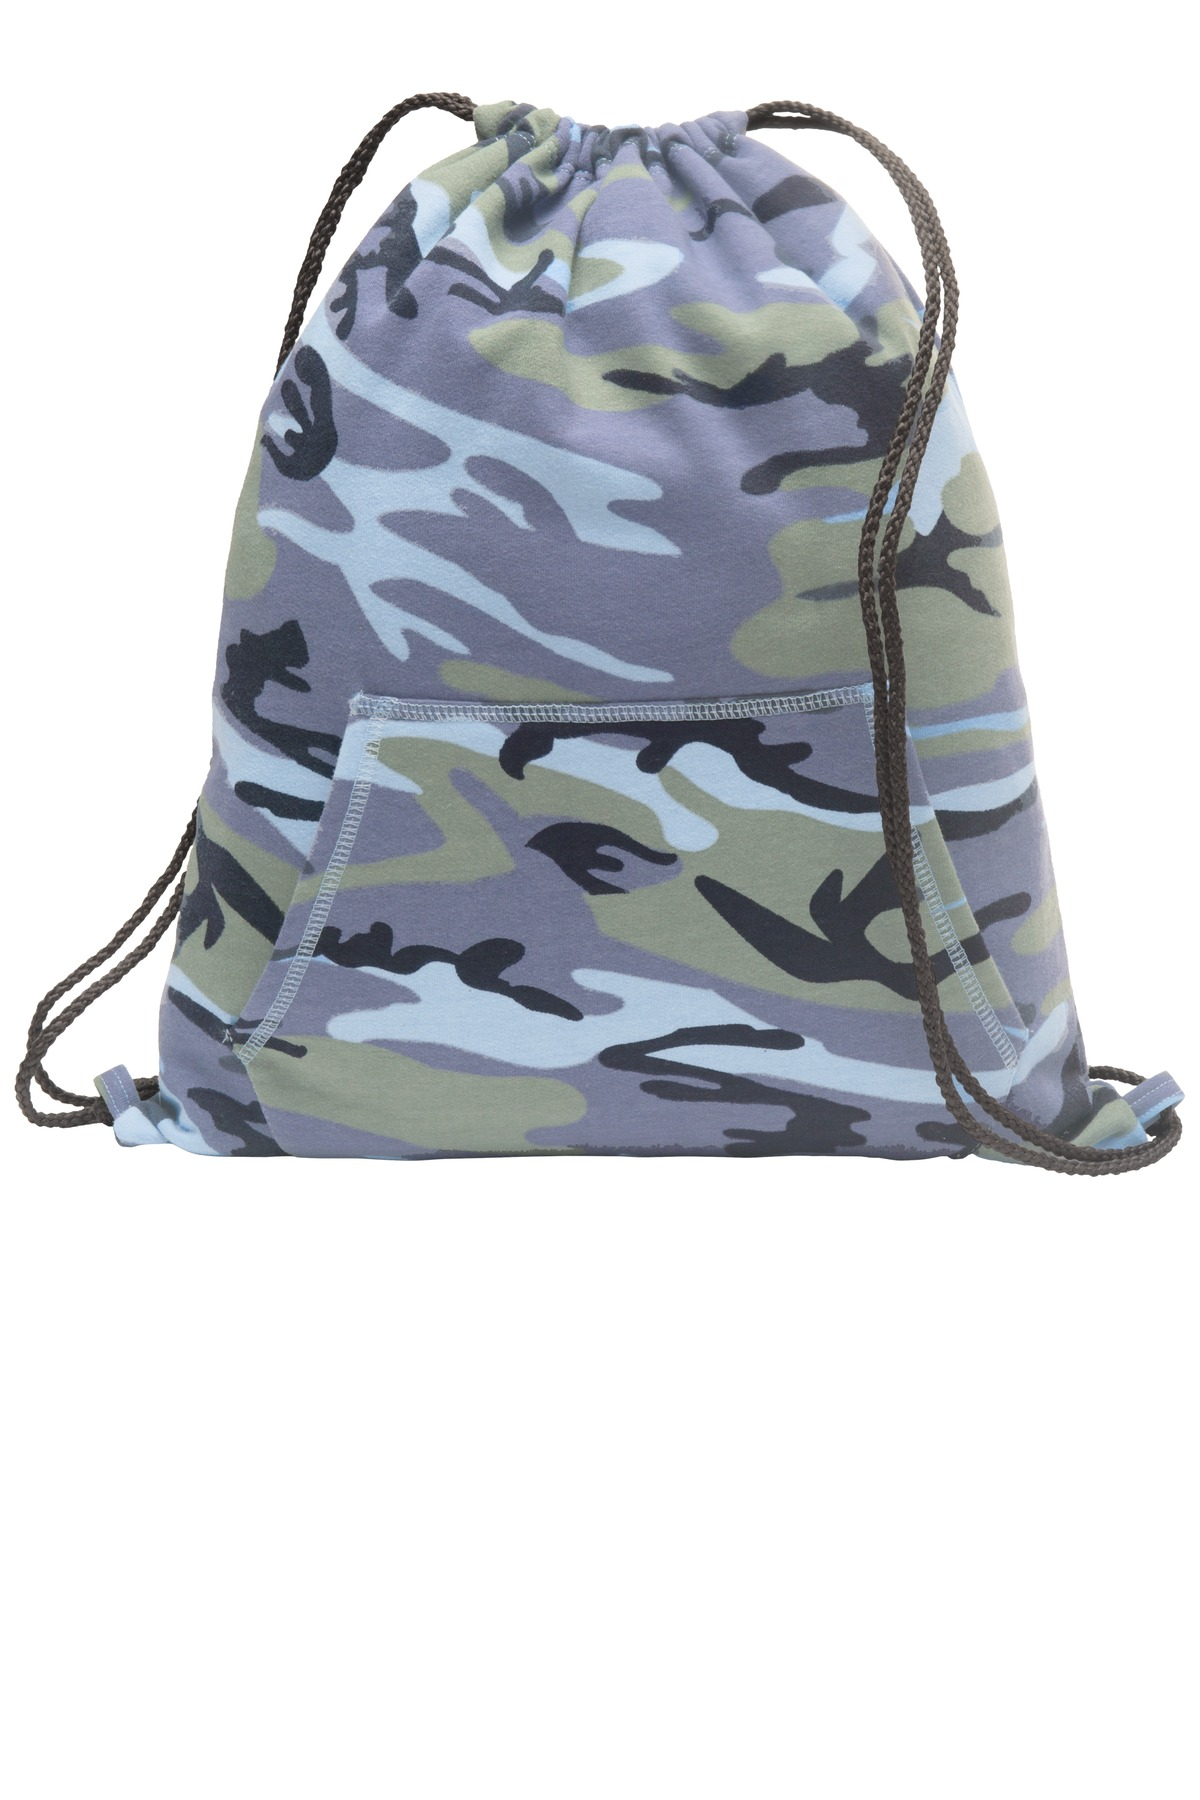 Port & Company ®  Core Fleece Sweatshirt Cinch Pack. BG614 - Woodland Blue Camo